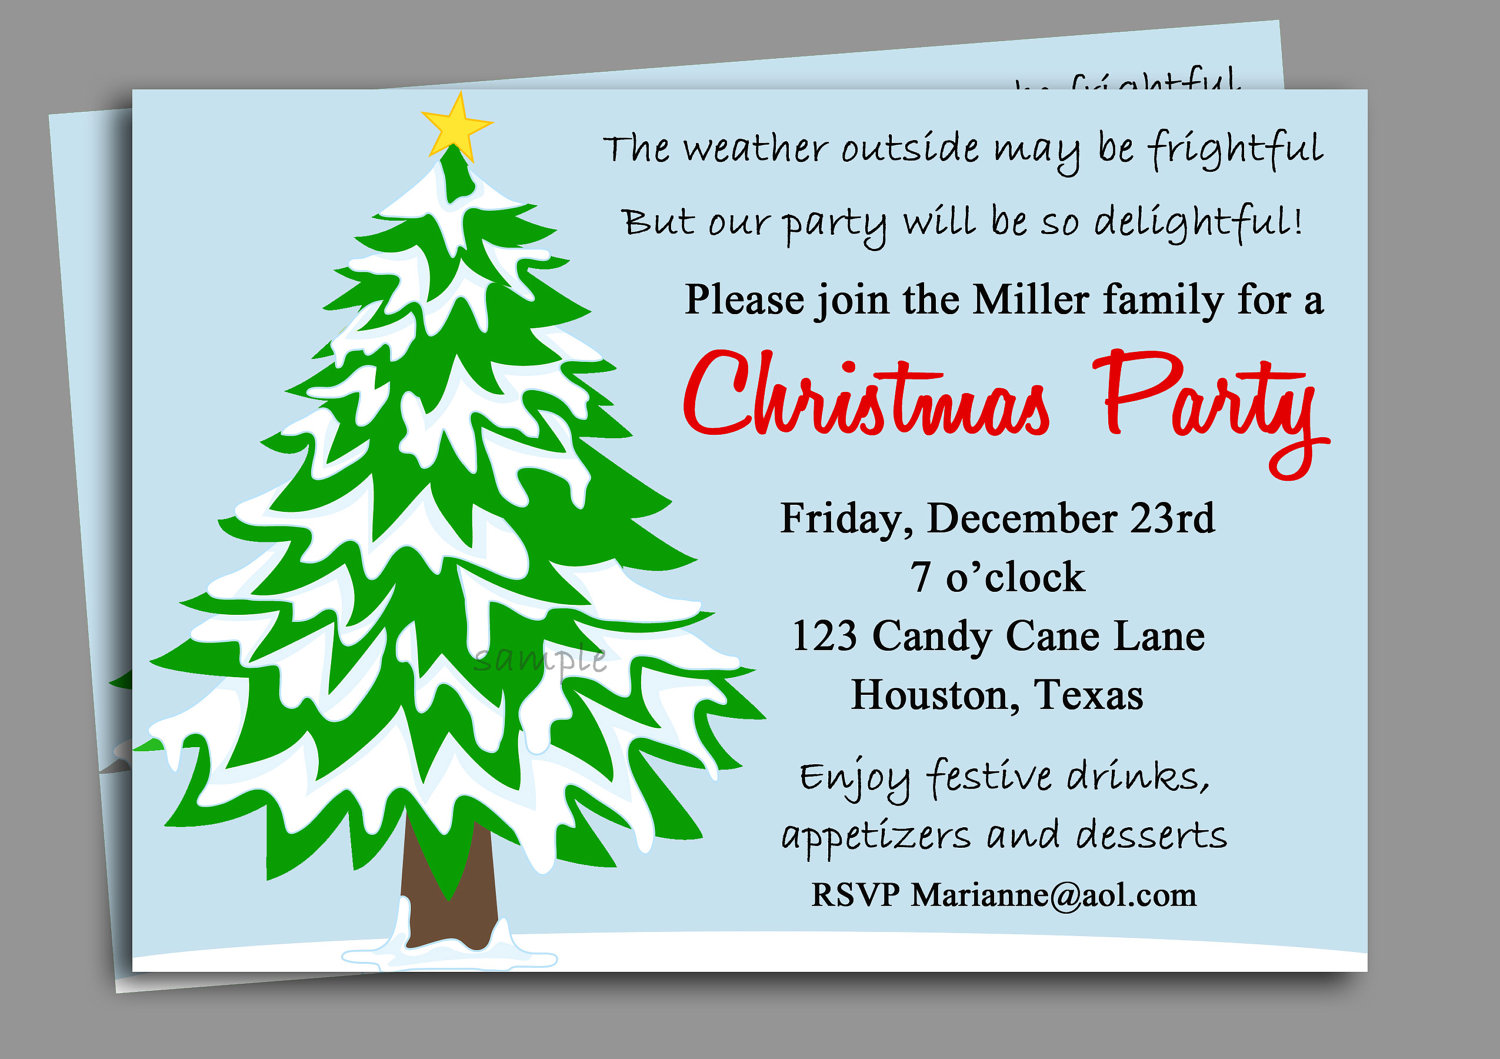 Work Christmas Party Invitations - Mickey Mouse Invitations Templates